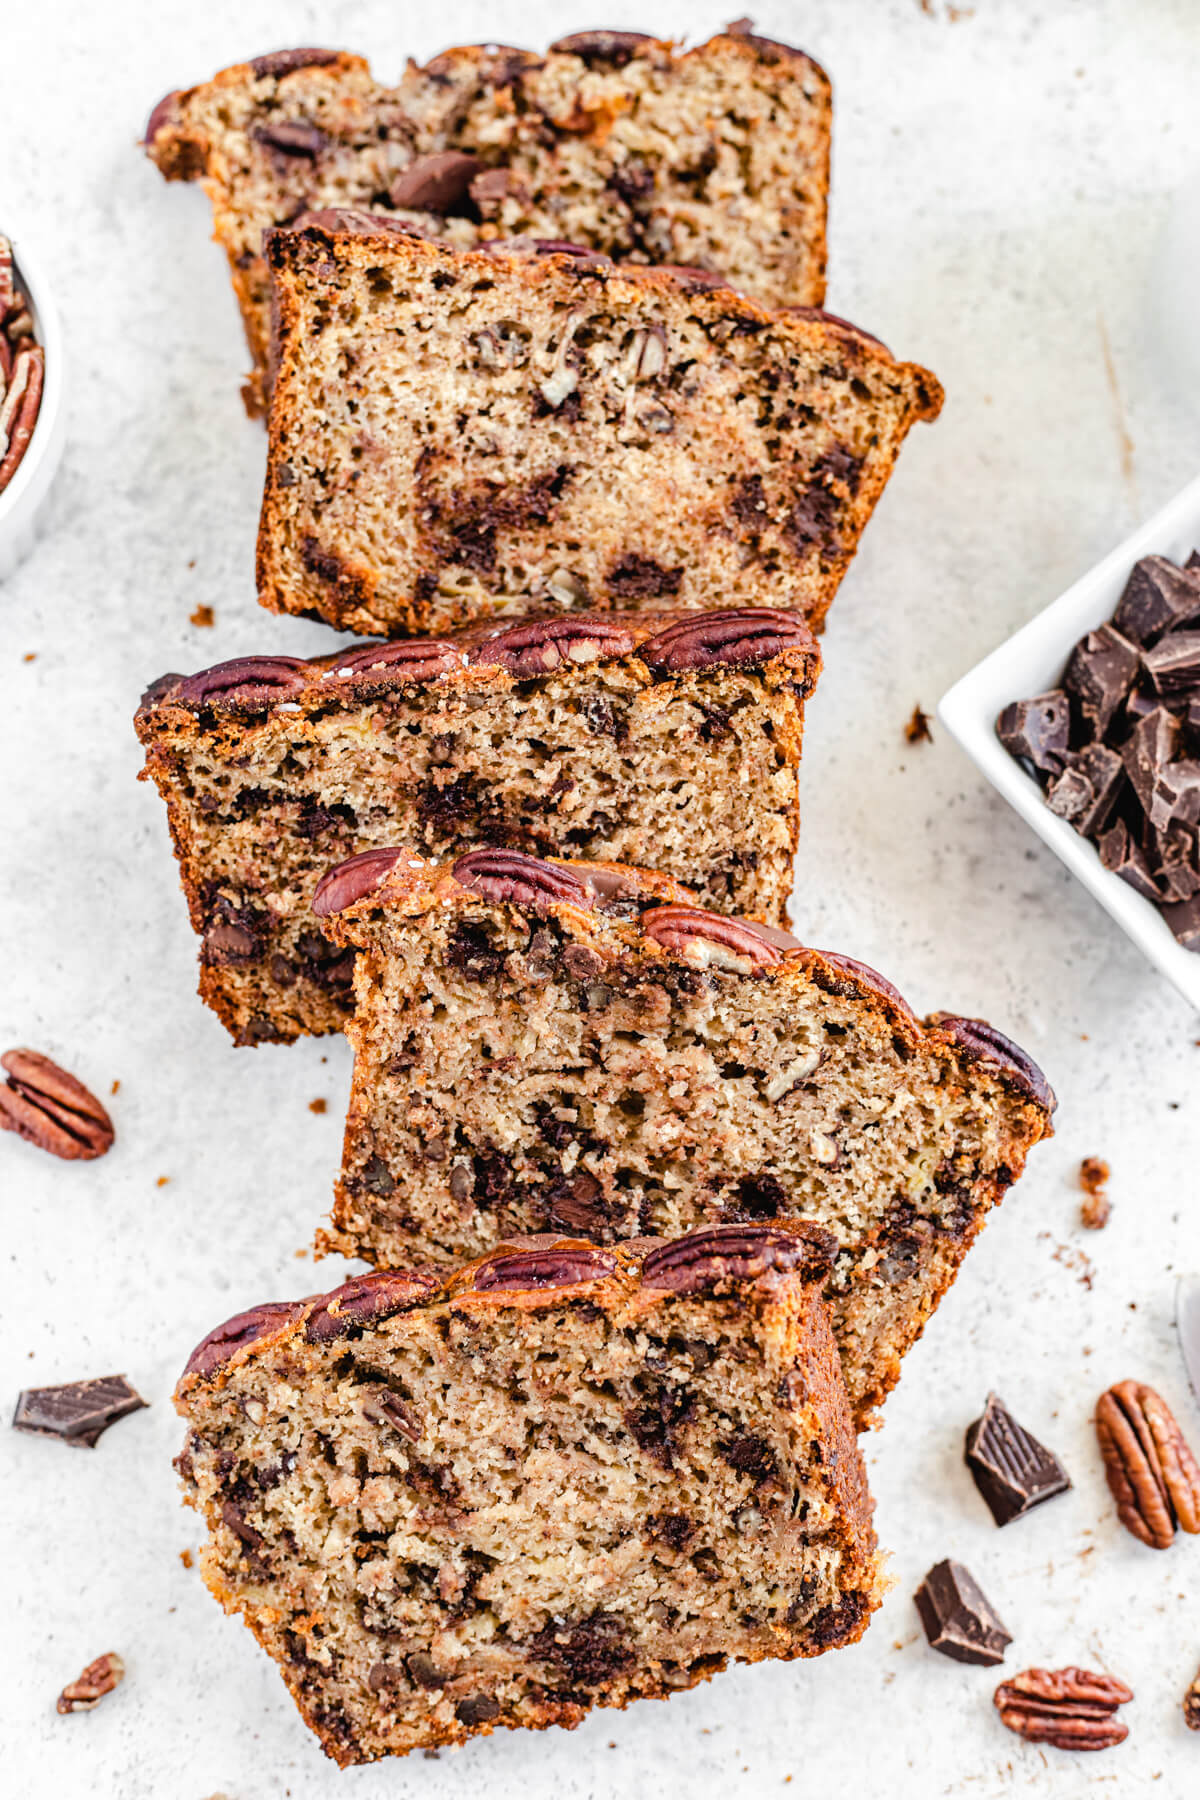 top shot of a row of banana bread slices with pecans and chocolate around them